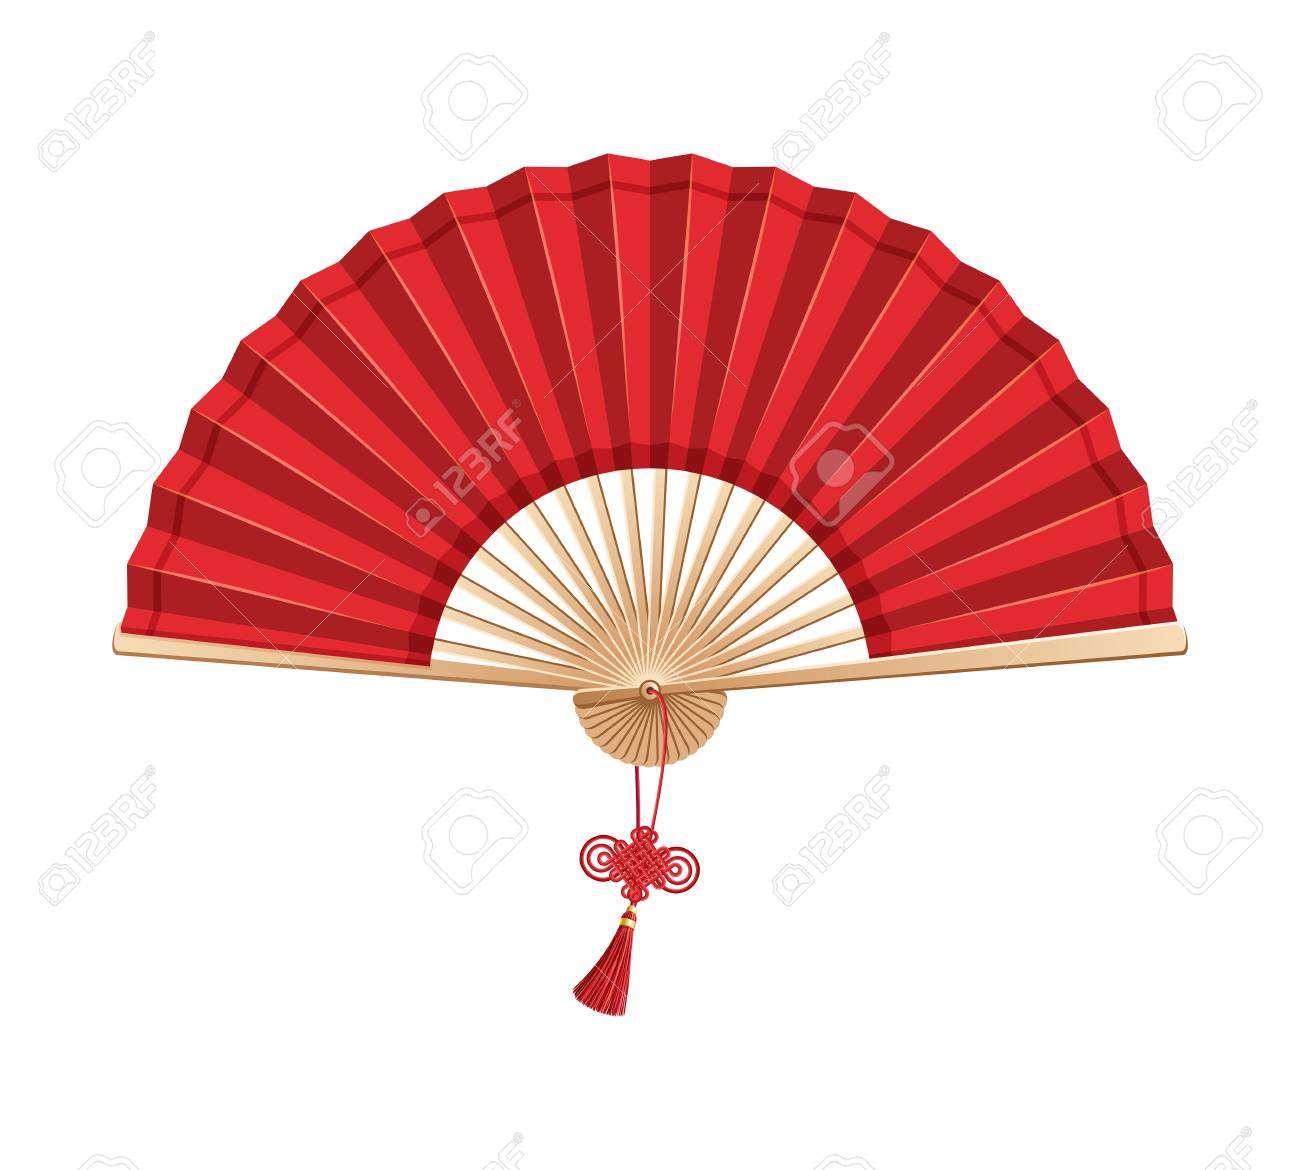 Red Chinese Hand Fan With Wishful Knot Isolated On White Background Royalty Free Cliparts Vectors And Stock Illustration Image 111967664